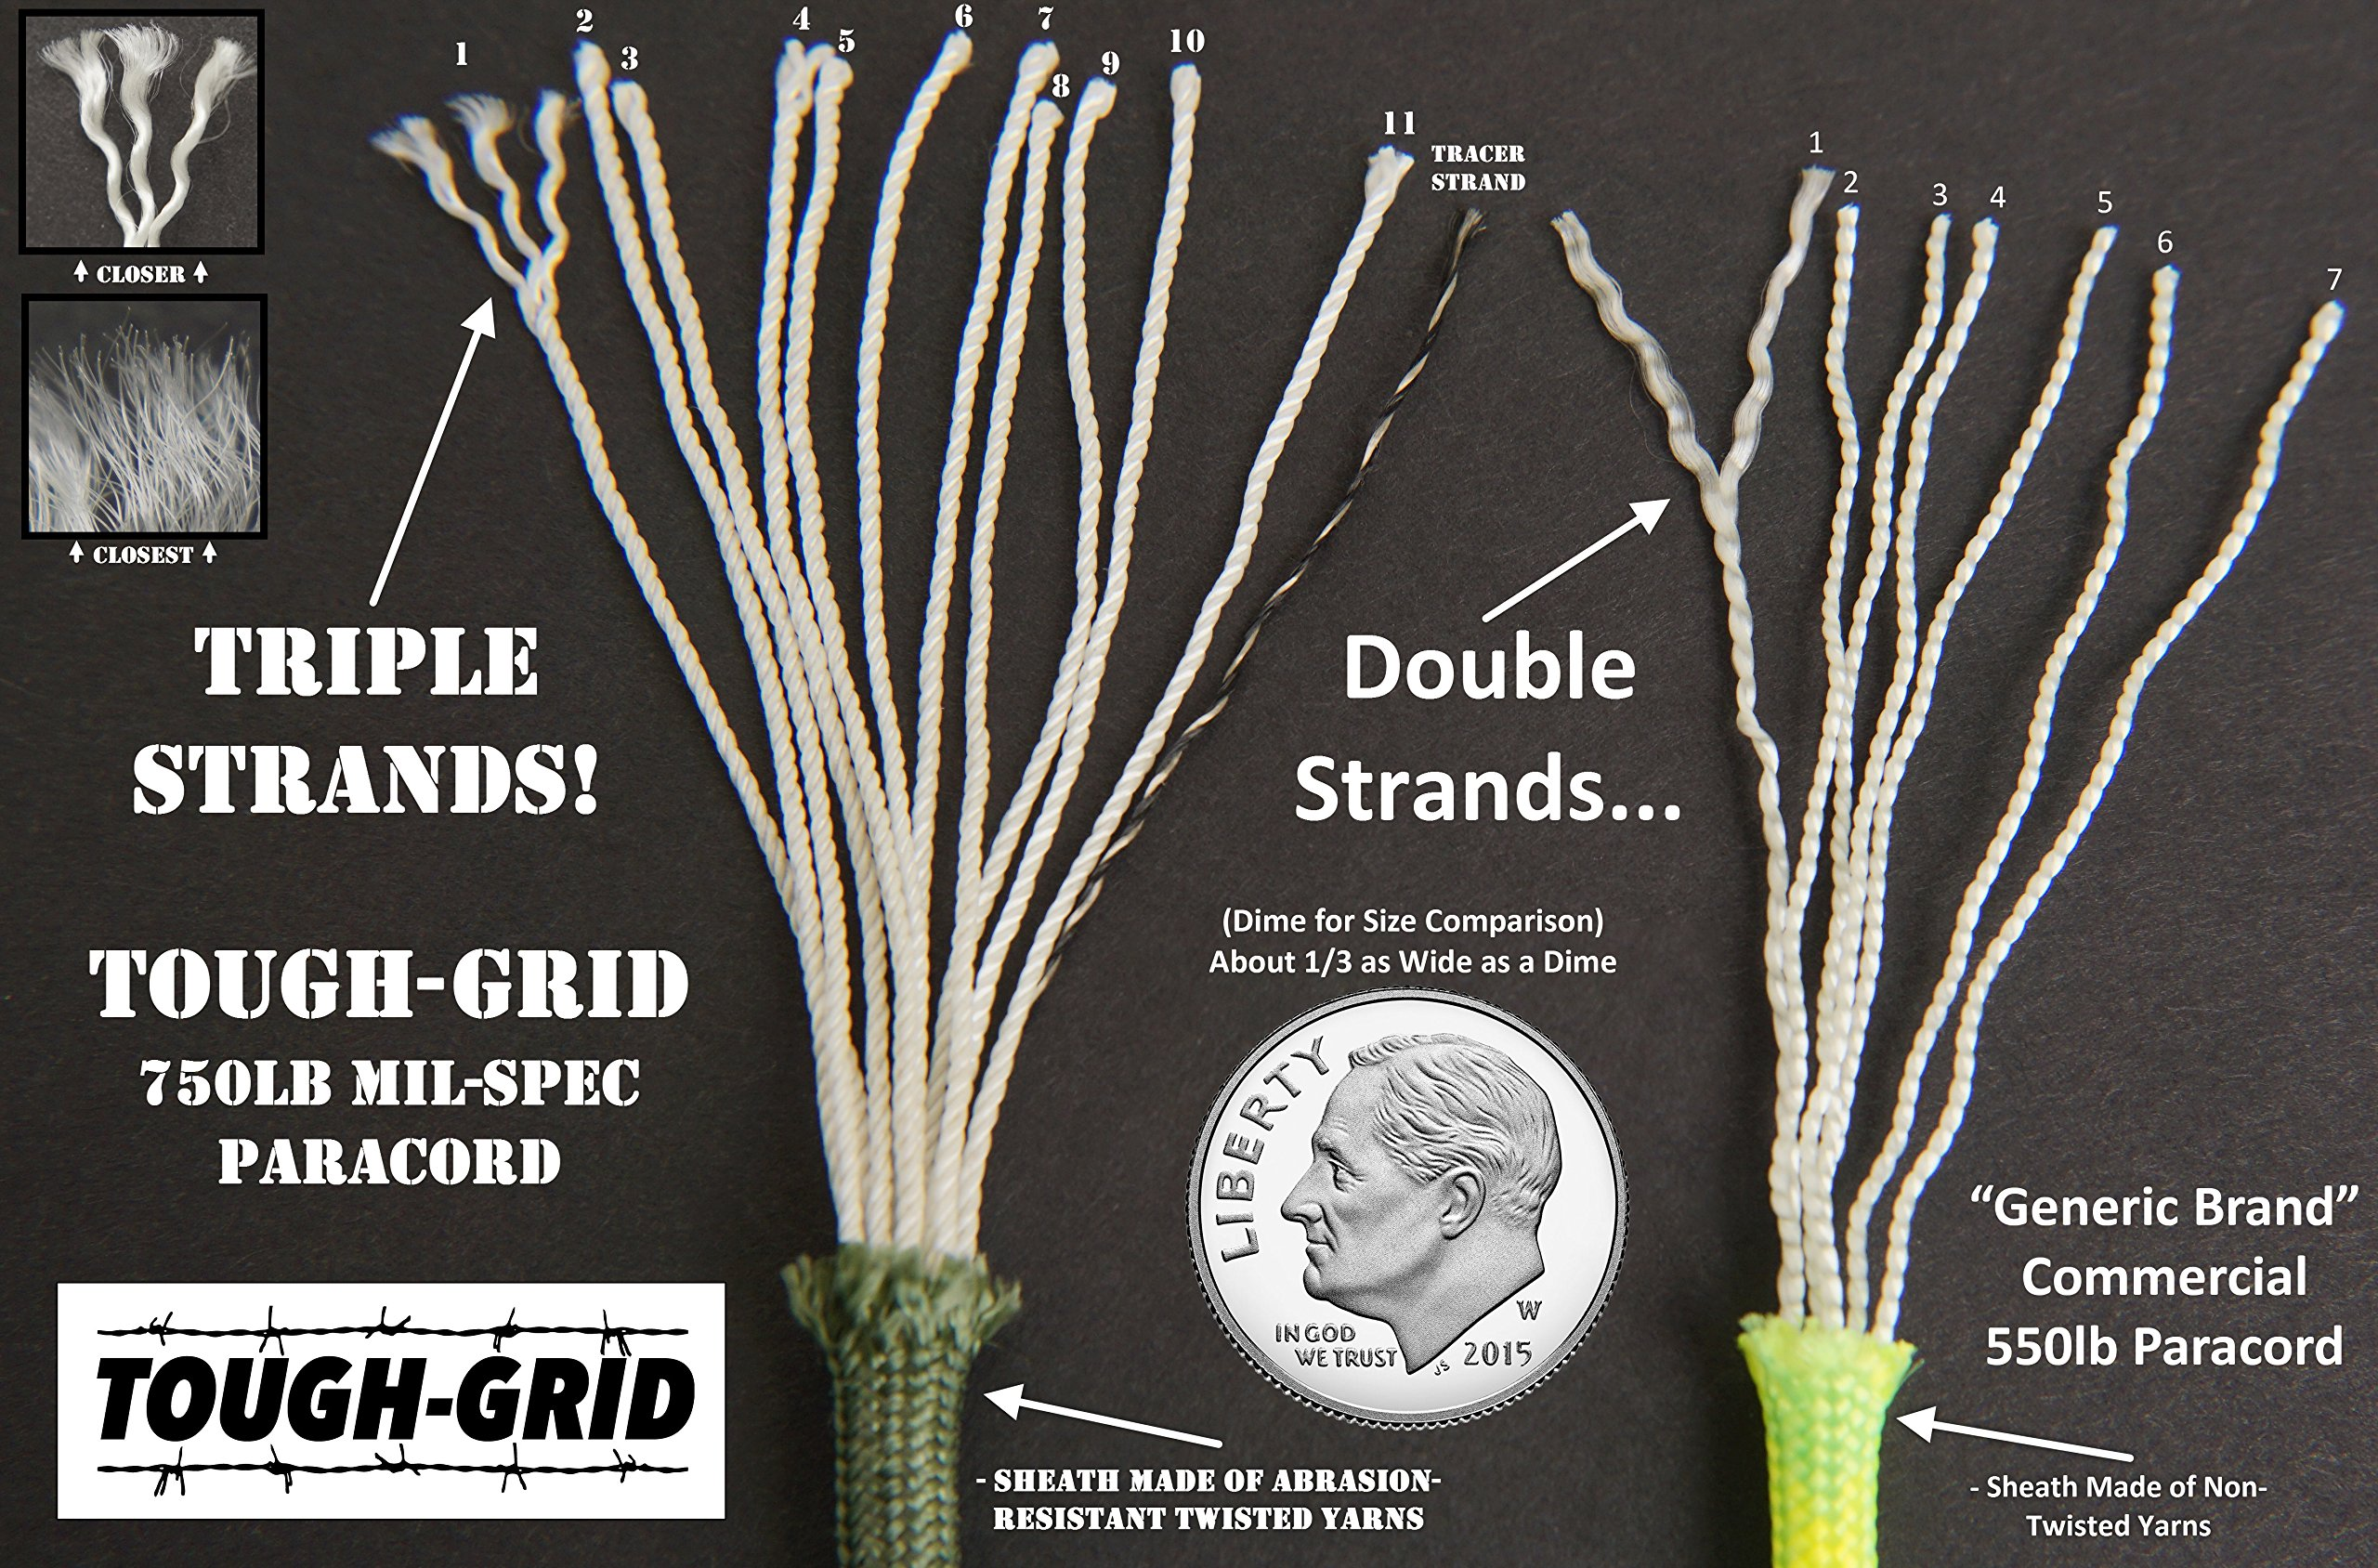 TOUGH-GRID 750lb Buckskin (Desert Sand) Paracord/Parachute Cord - Genuine Mil Spec Type IV 750lb Paracord Used by The US Military (MIl-C-5040-H) - 100% Nylon - Made in The USA. 200Ft. - Buckskin by TOUGH-GRID (Image #4)